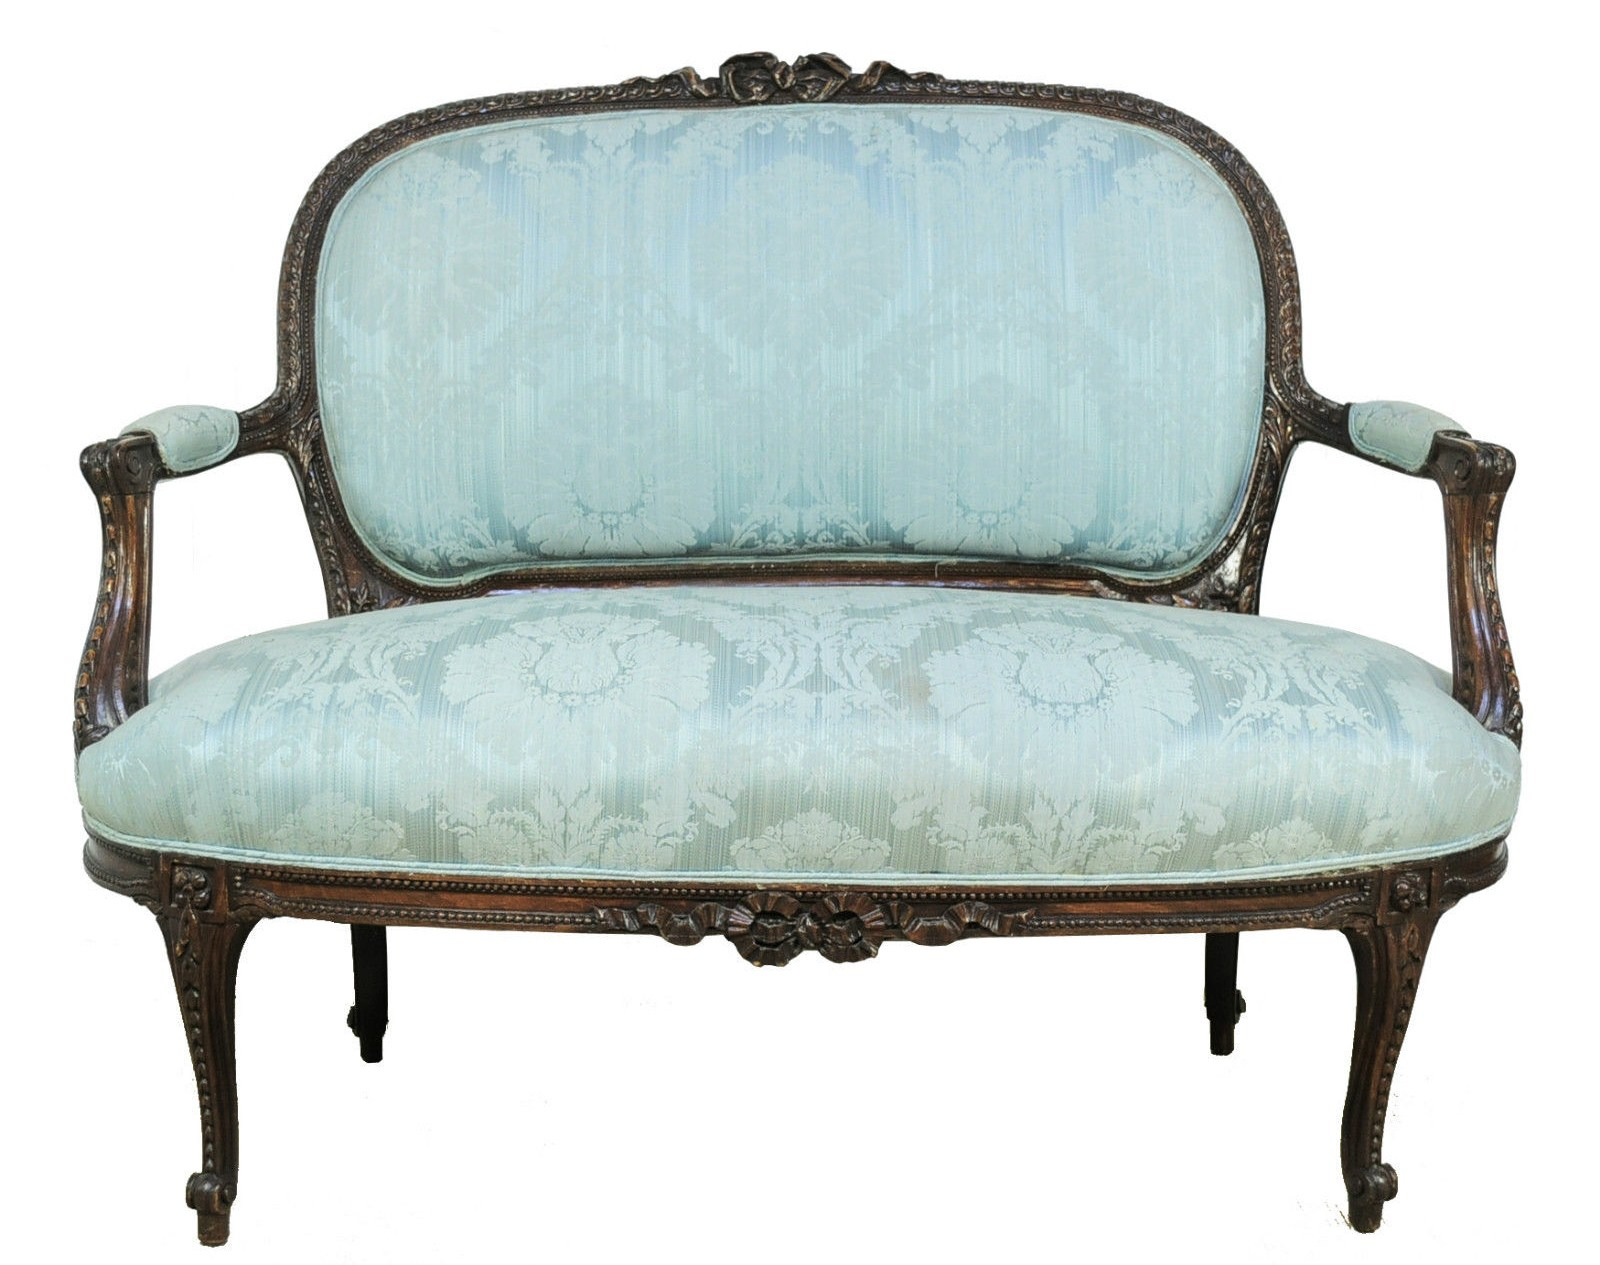 French Style Sofas Ebay Chaise Longue Ornate Gold Leaf